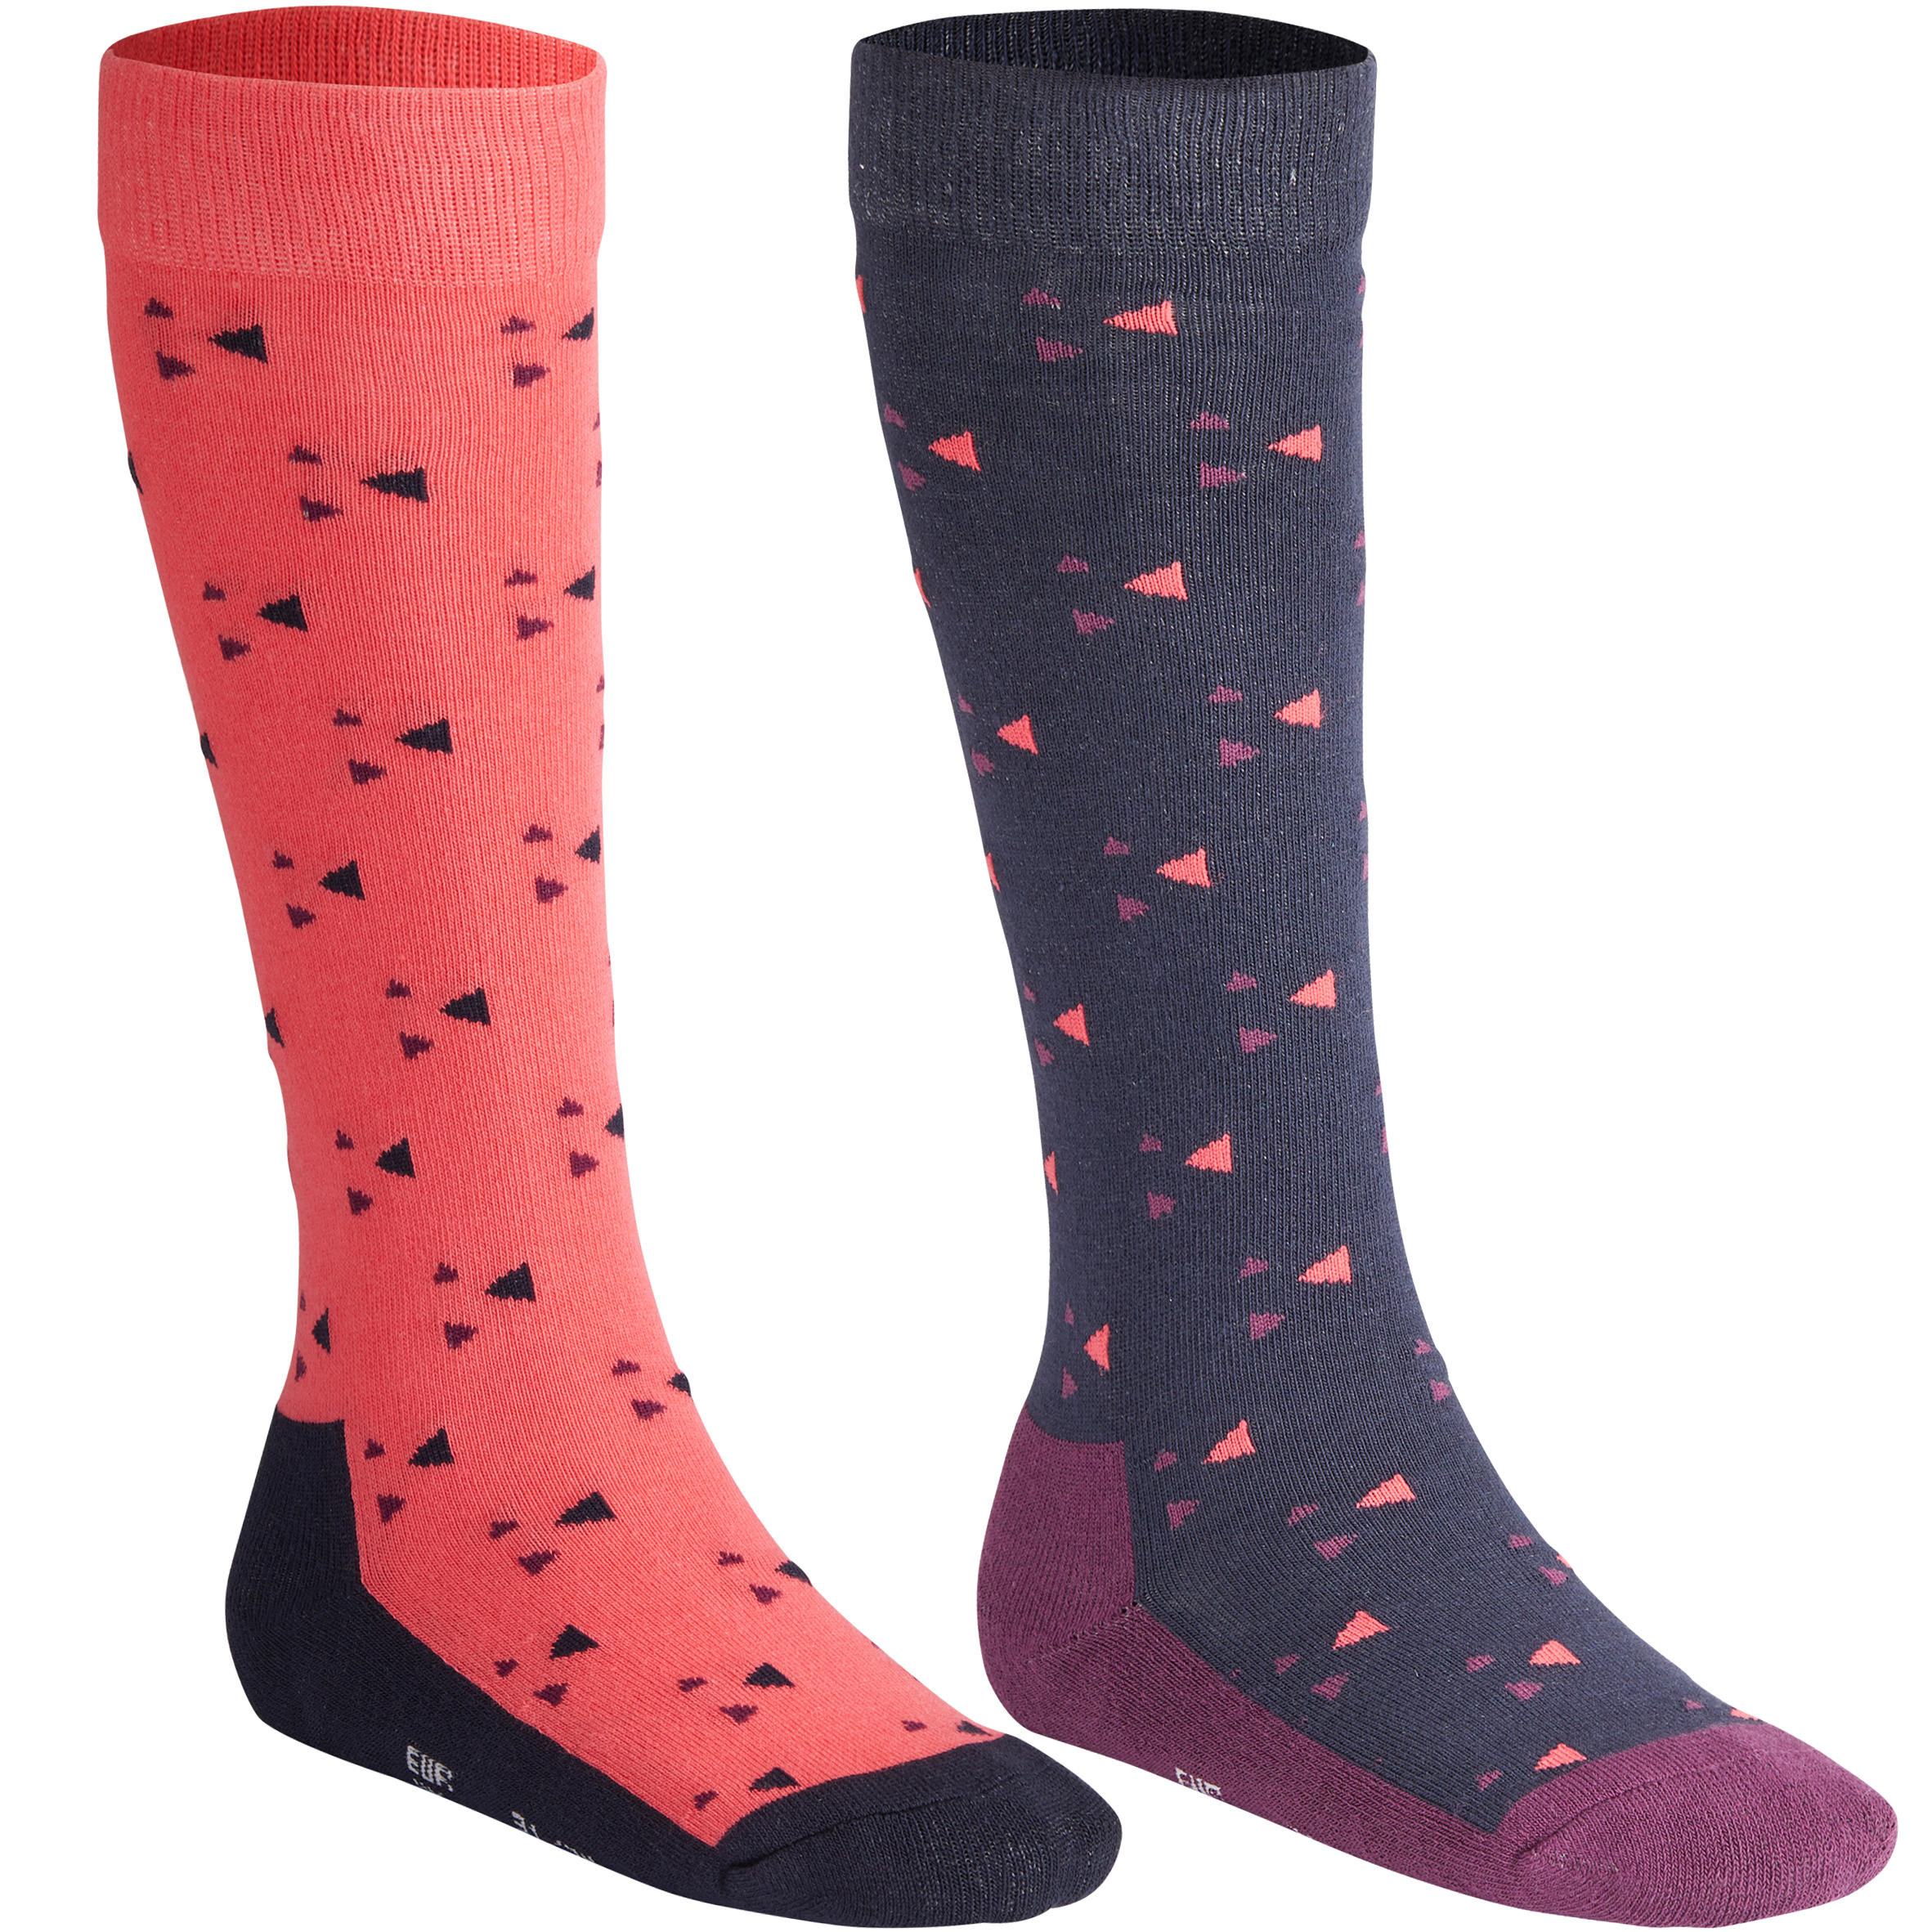 500 Girls' Horse Riding Socks Twin-Pack - Navy/Pink